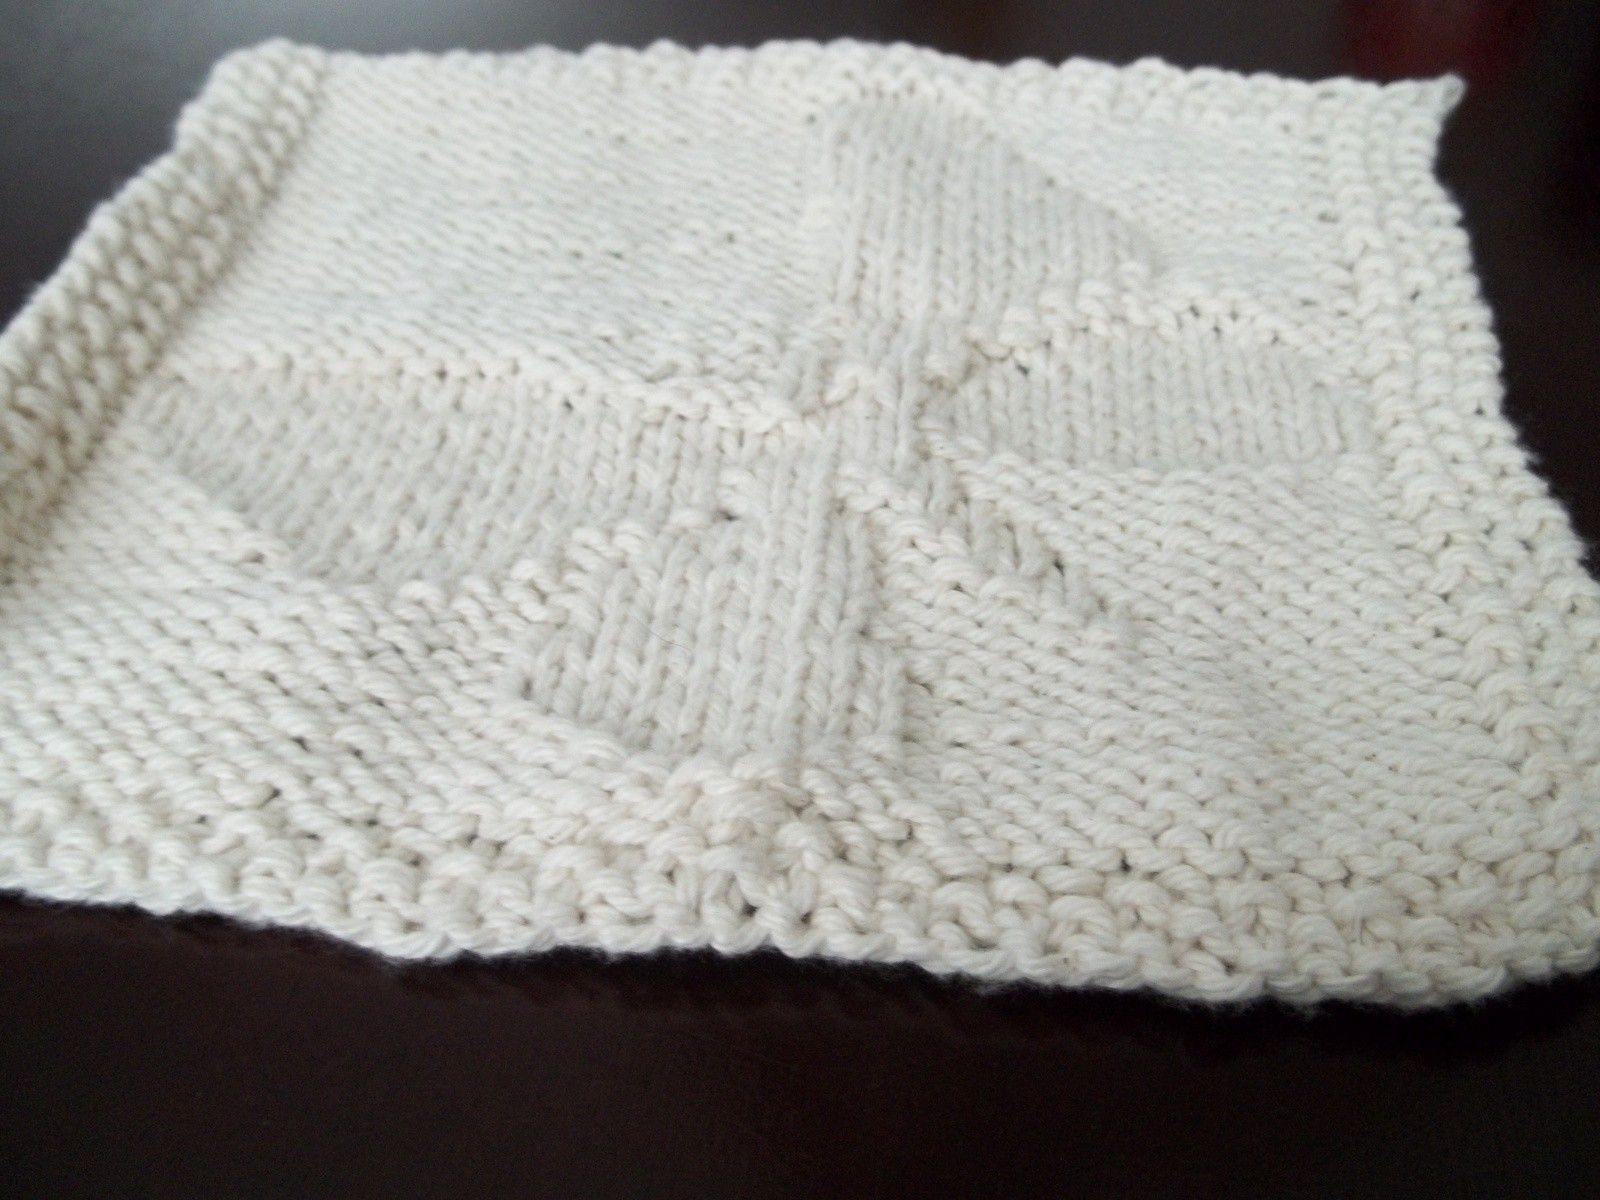 Knitted Butterfly Dishcloth Pattern Butterfly Dishcloth A Dish Cloth Or Scrubber Knitting On Cut Out